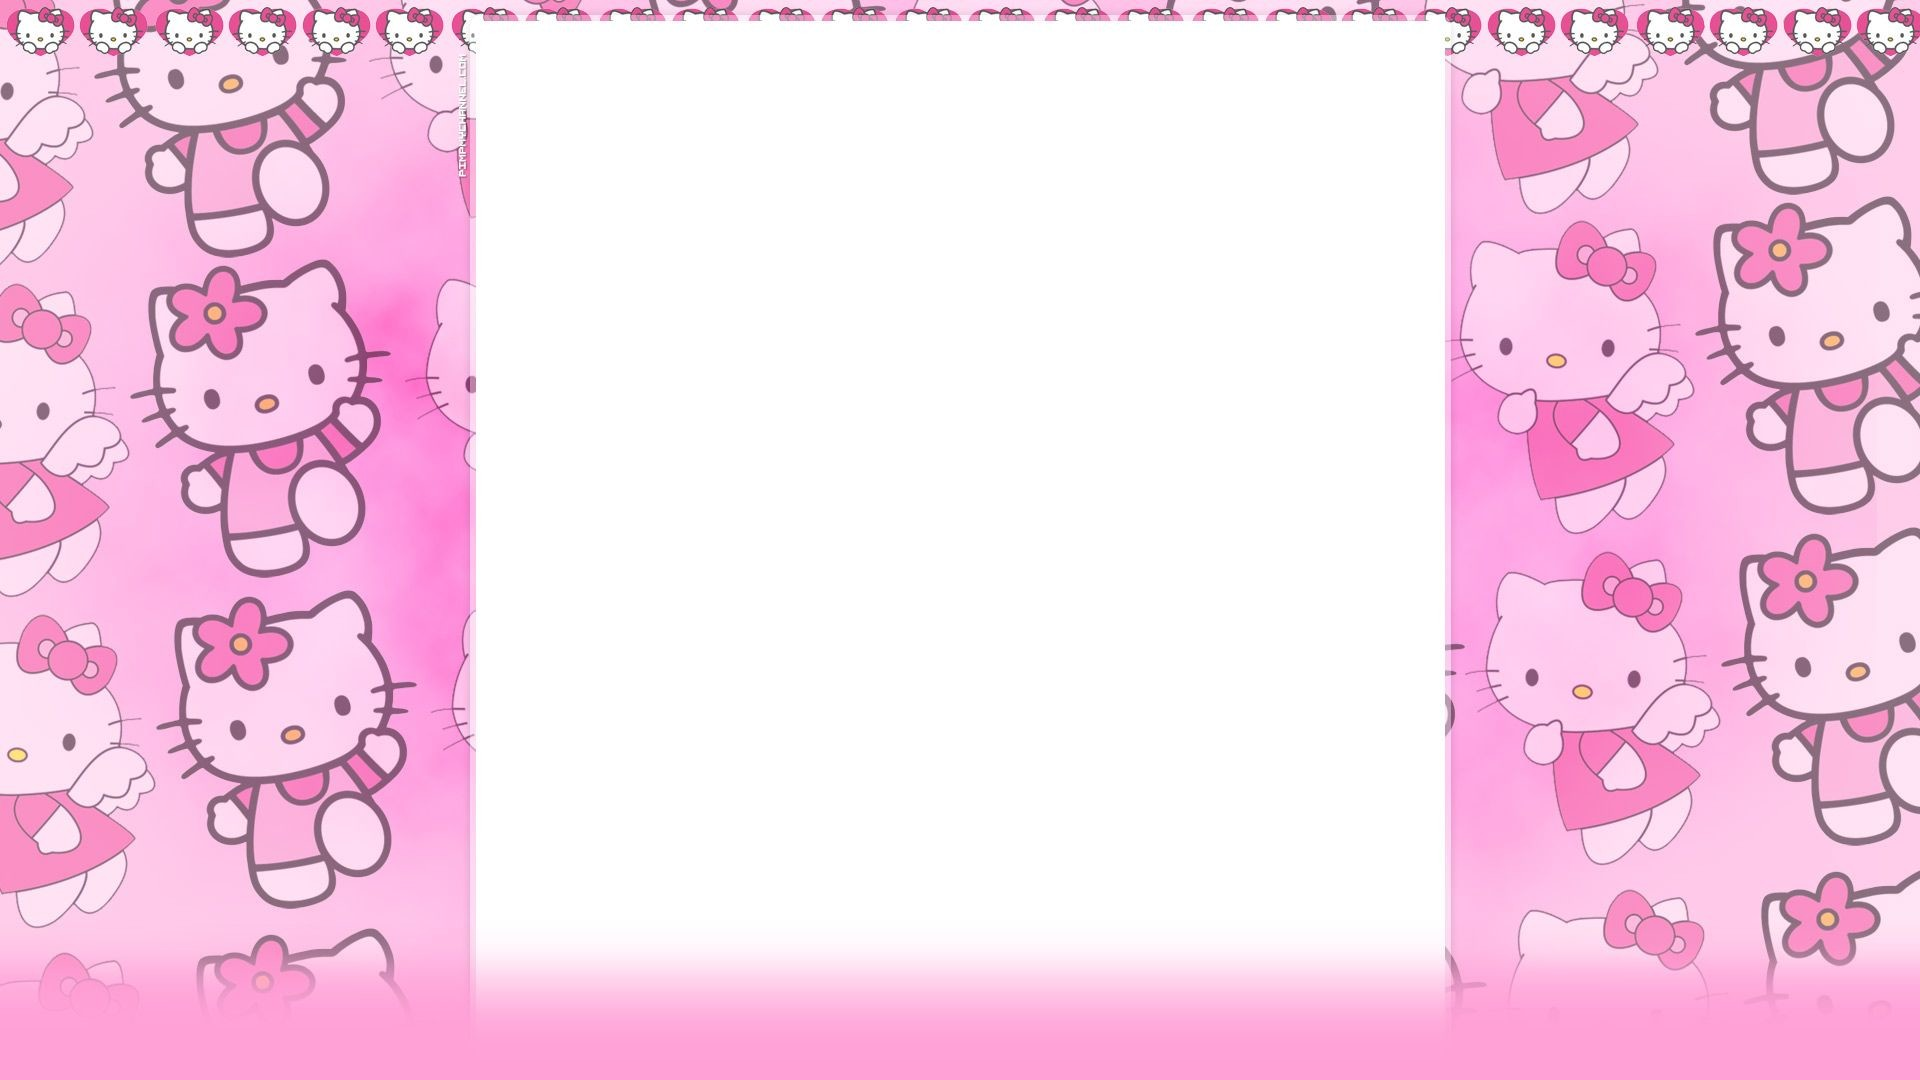 Download Hello Kitty Pink Youtube Pimpmychannel Wallpaper .